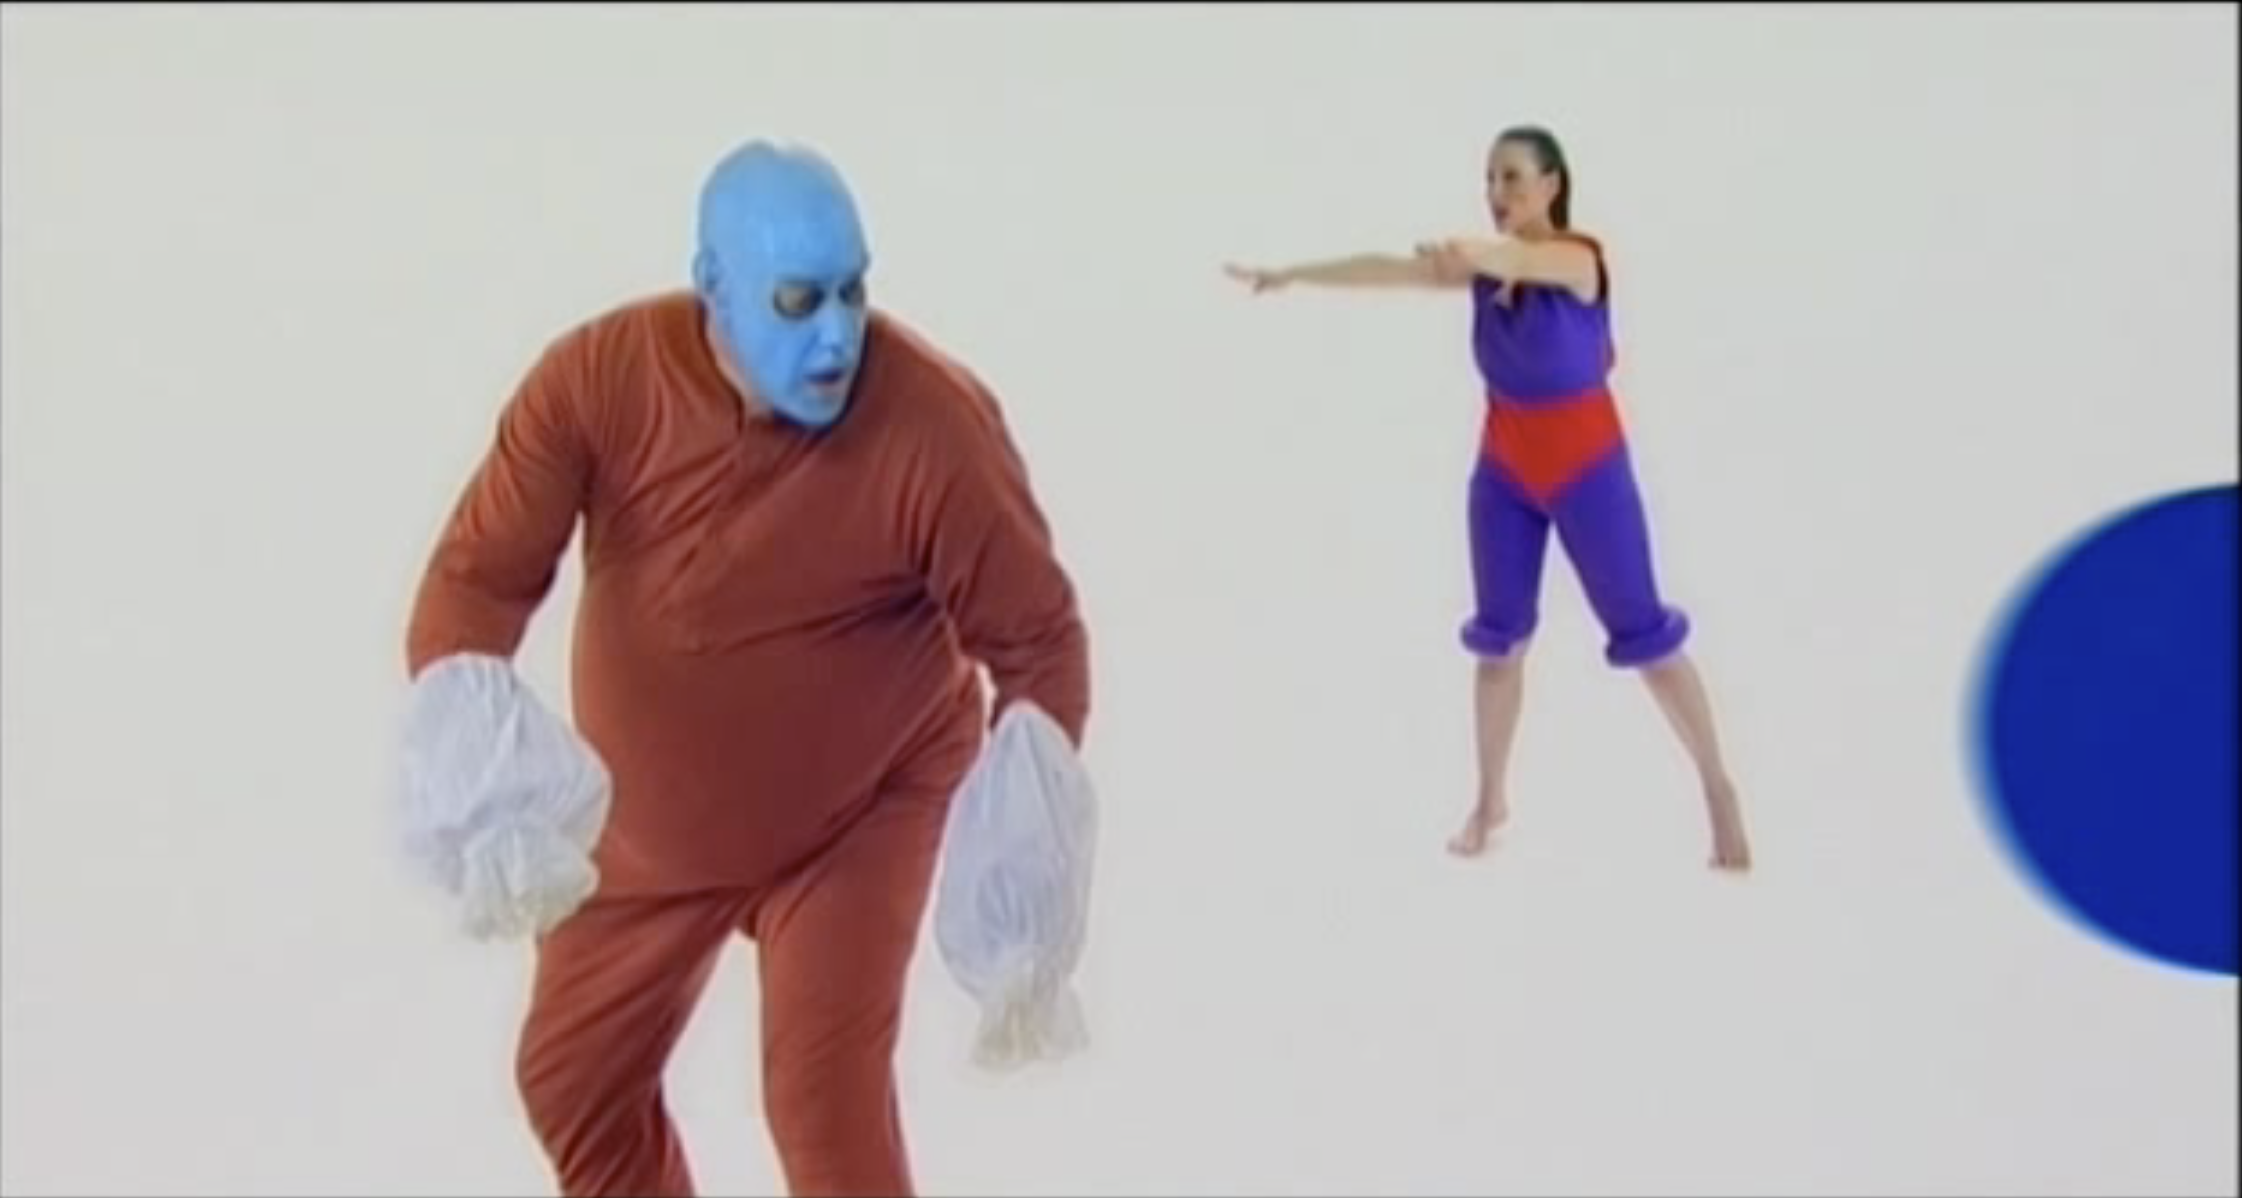 Image from the The Garden, Performance video documentation, 2003